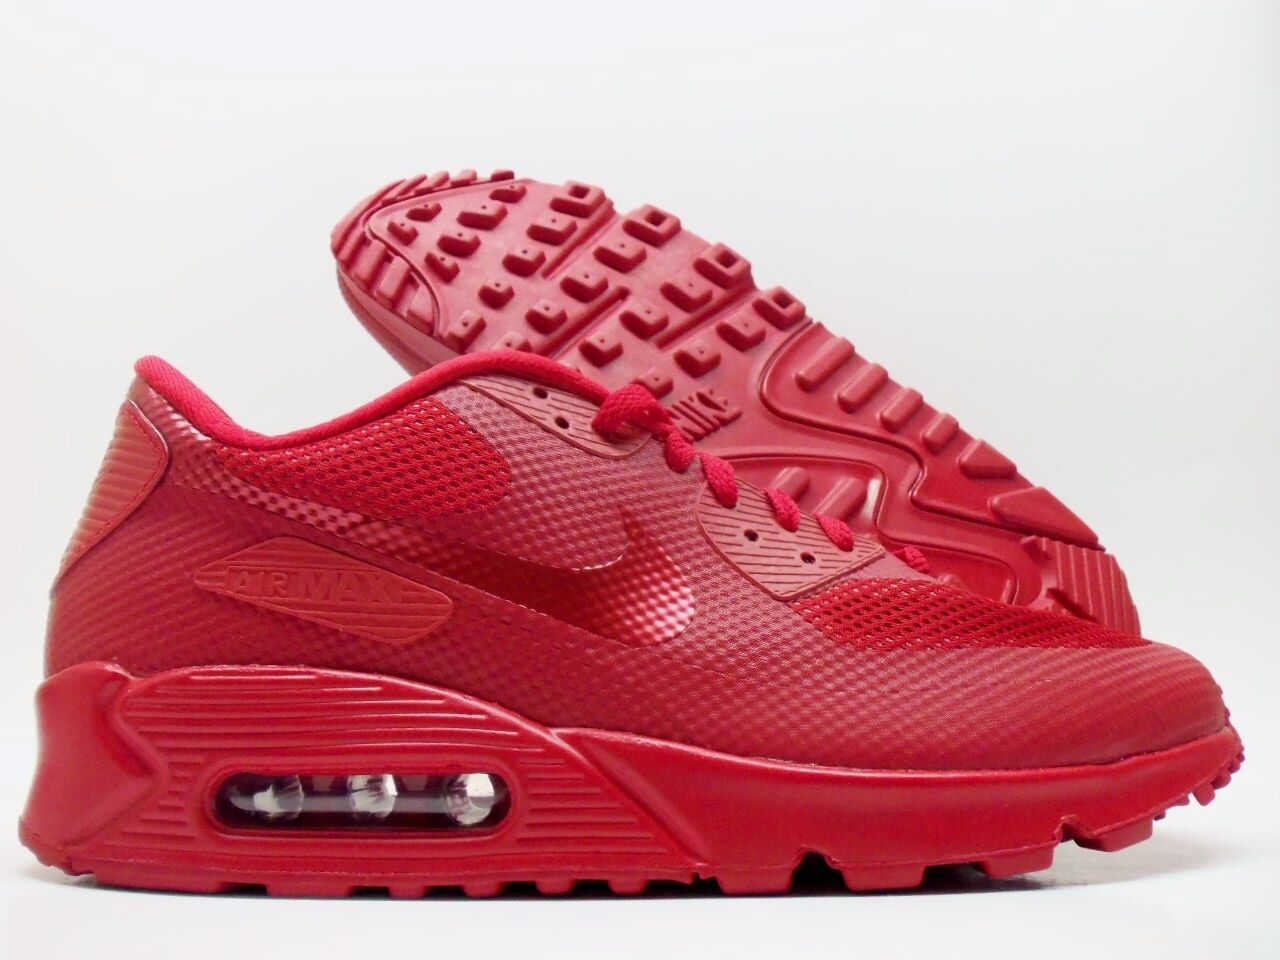 NIKE AIR MAX 90 HYPERFUSE PREMIUM ID RED OCTOBER SIZE MEN'S 8.5 [653603-992]